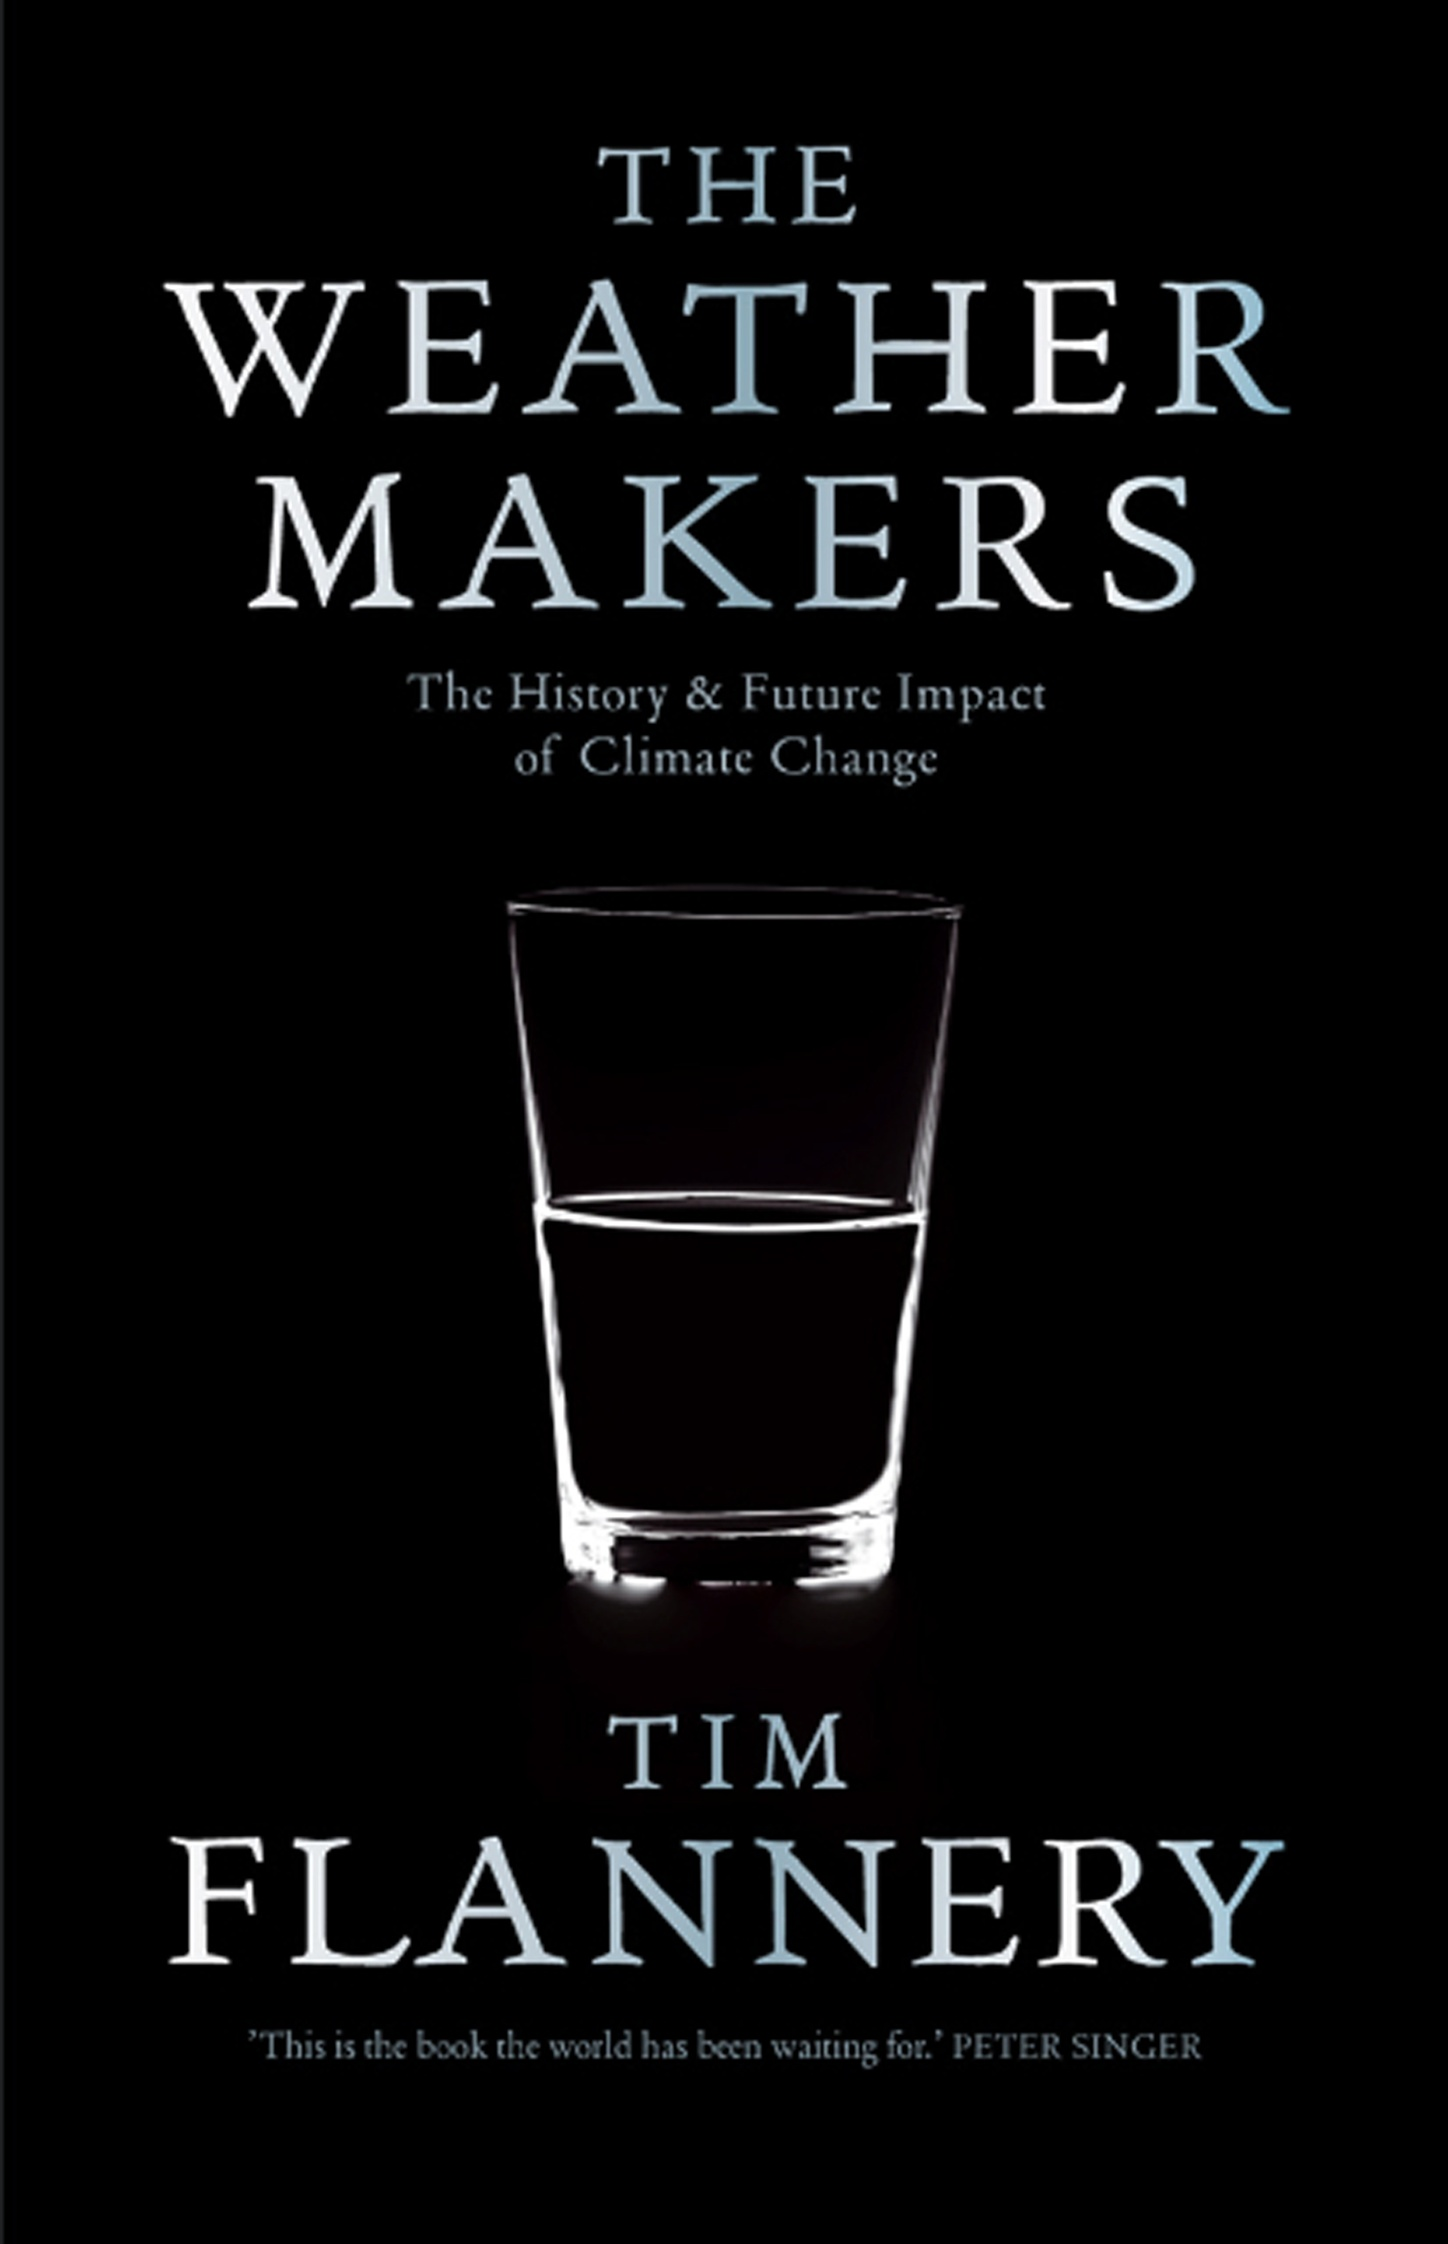 The Weather Makers by Tim Flannery, ISBN: 9781921351822